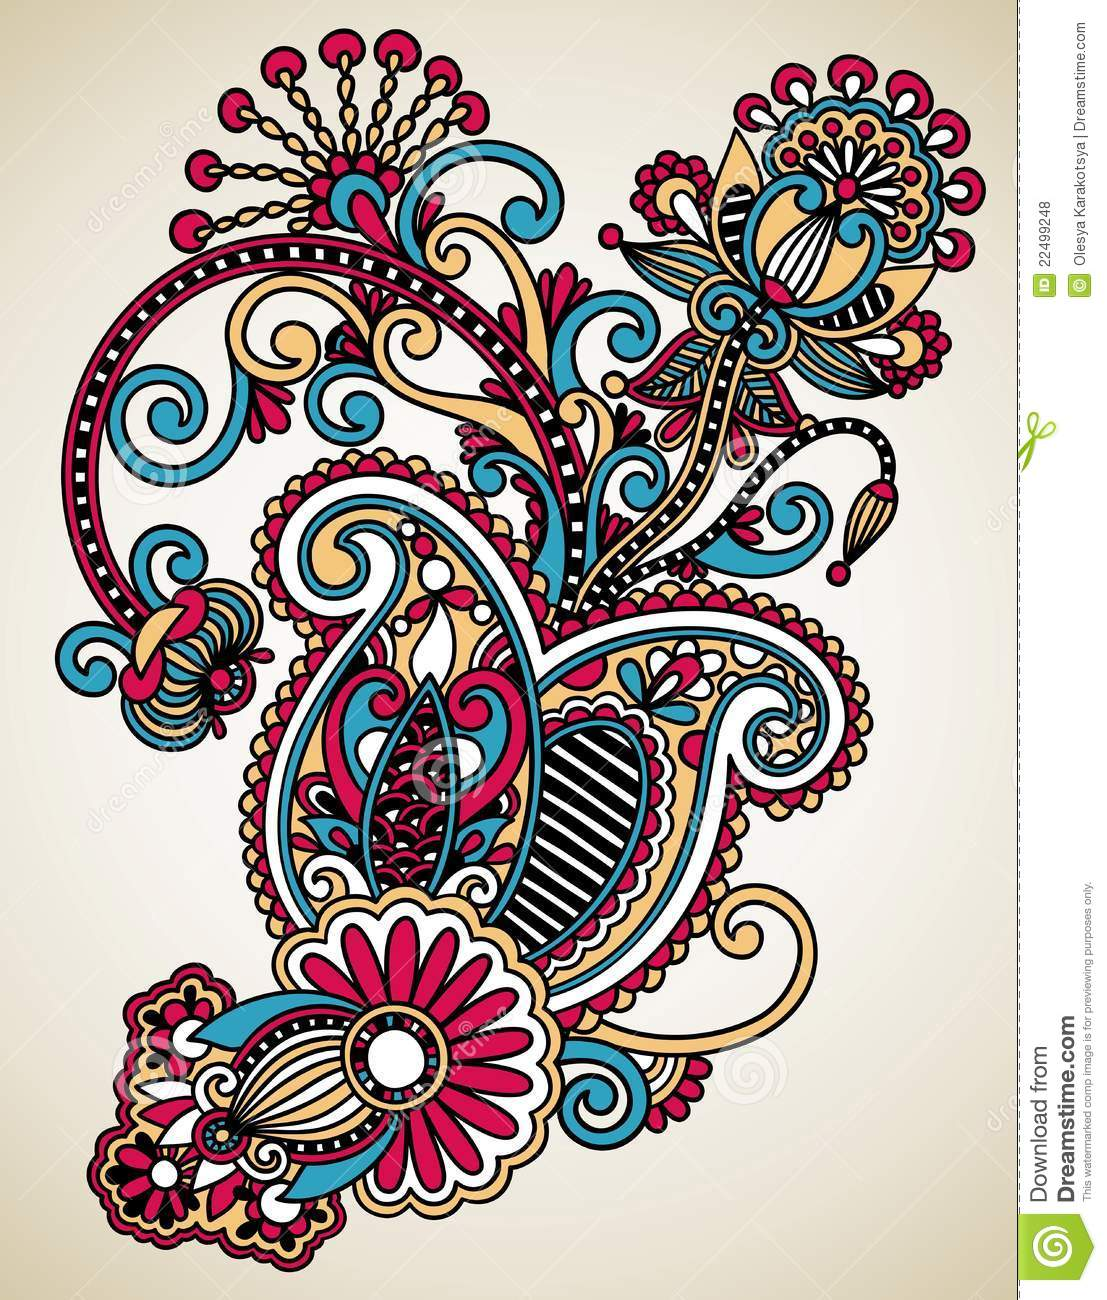 Line Art Poster Design : Line art ornate flower design royalty free stock photos